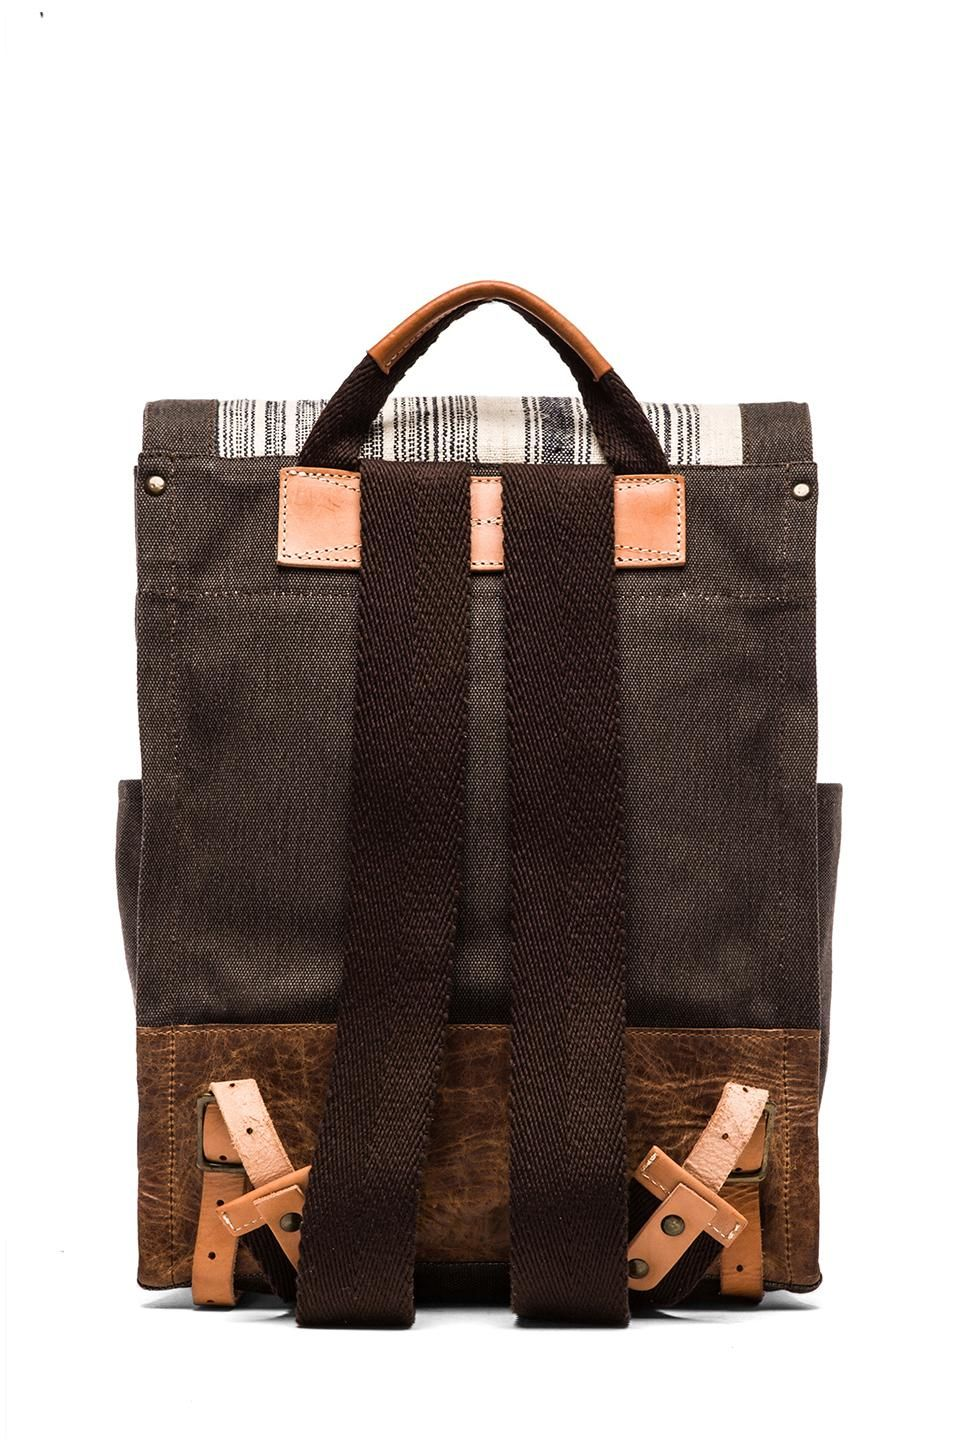 WILL Leather Goods Pha Sin Backpack in Brown REVOLVE